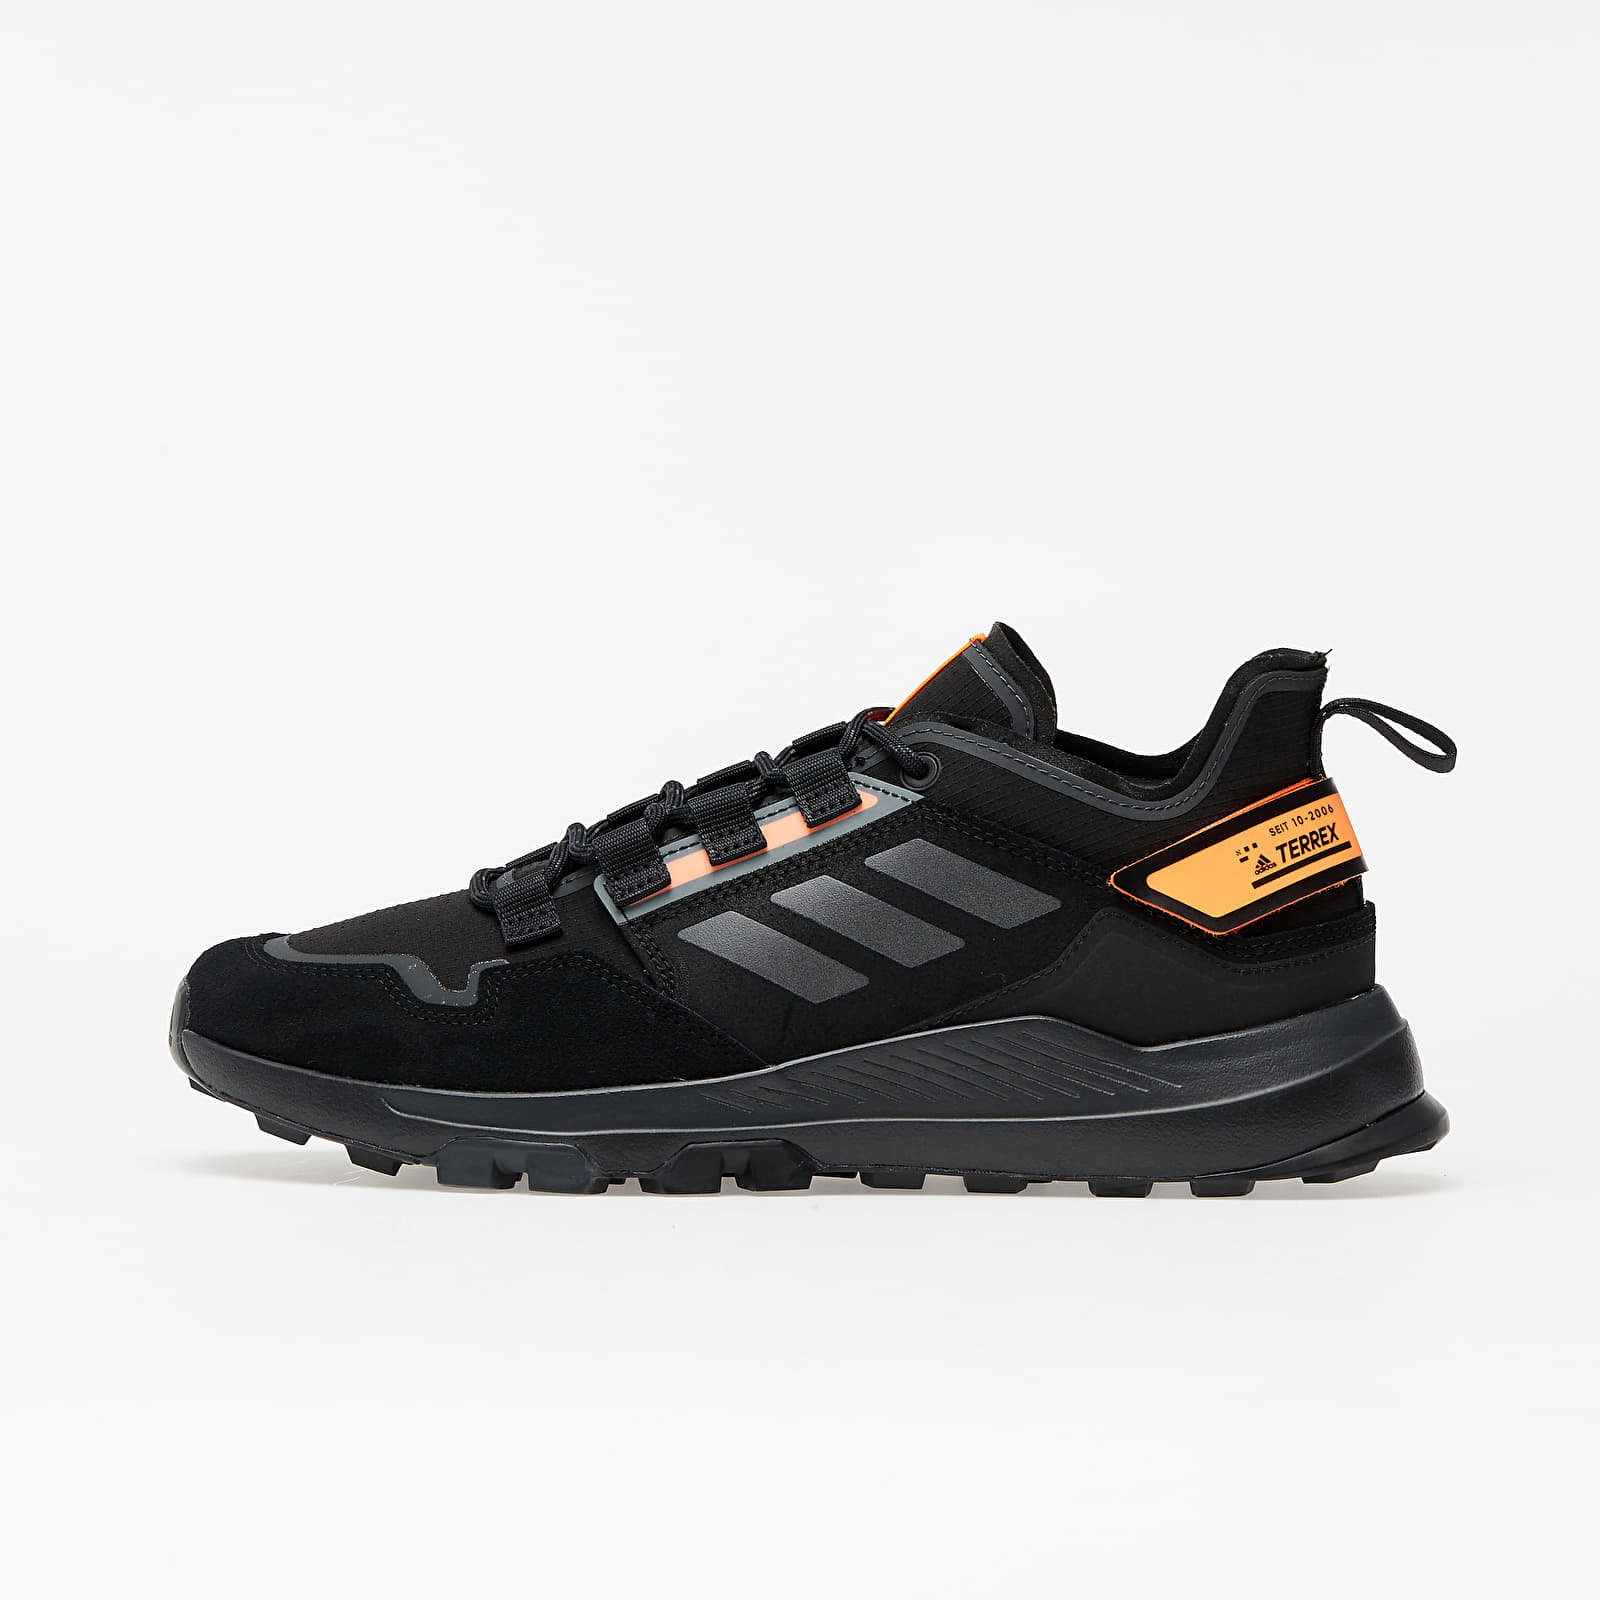 adidas Terrex Hikster Core Black/ Dg Solid Grey/ Signature Orange EUR 46